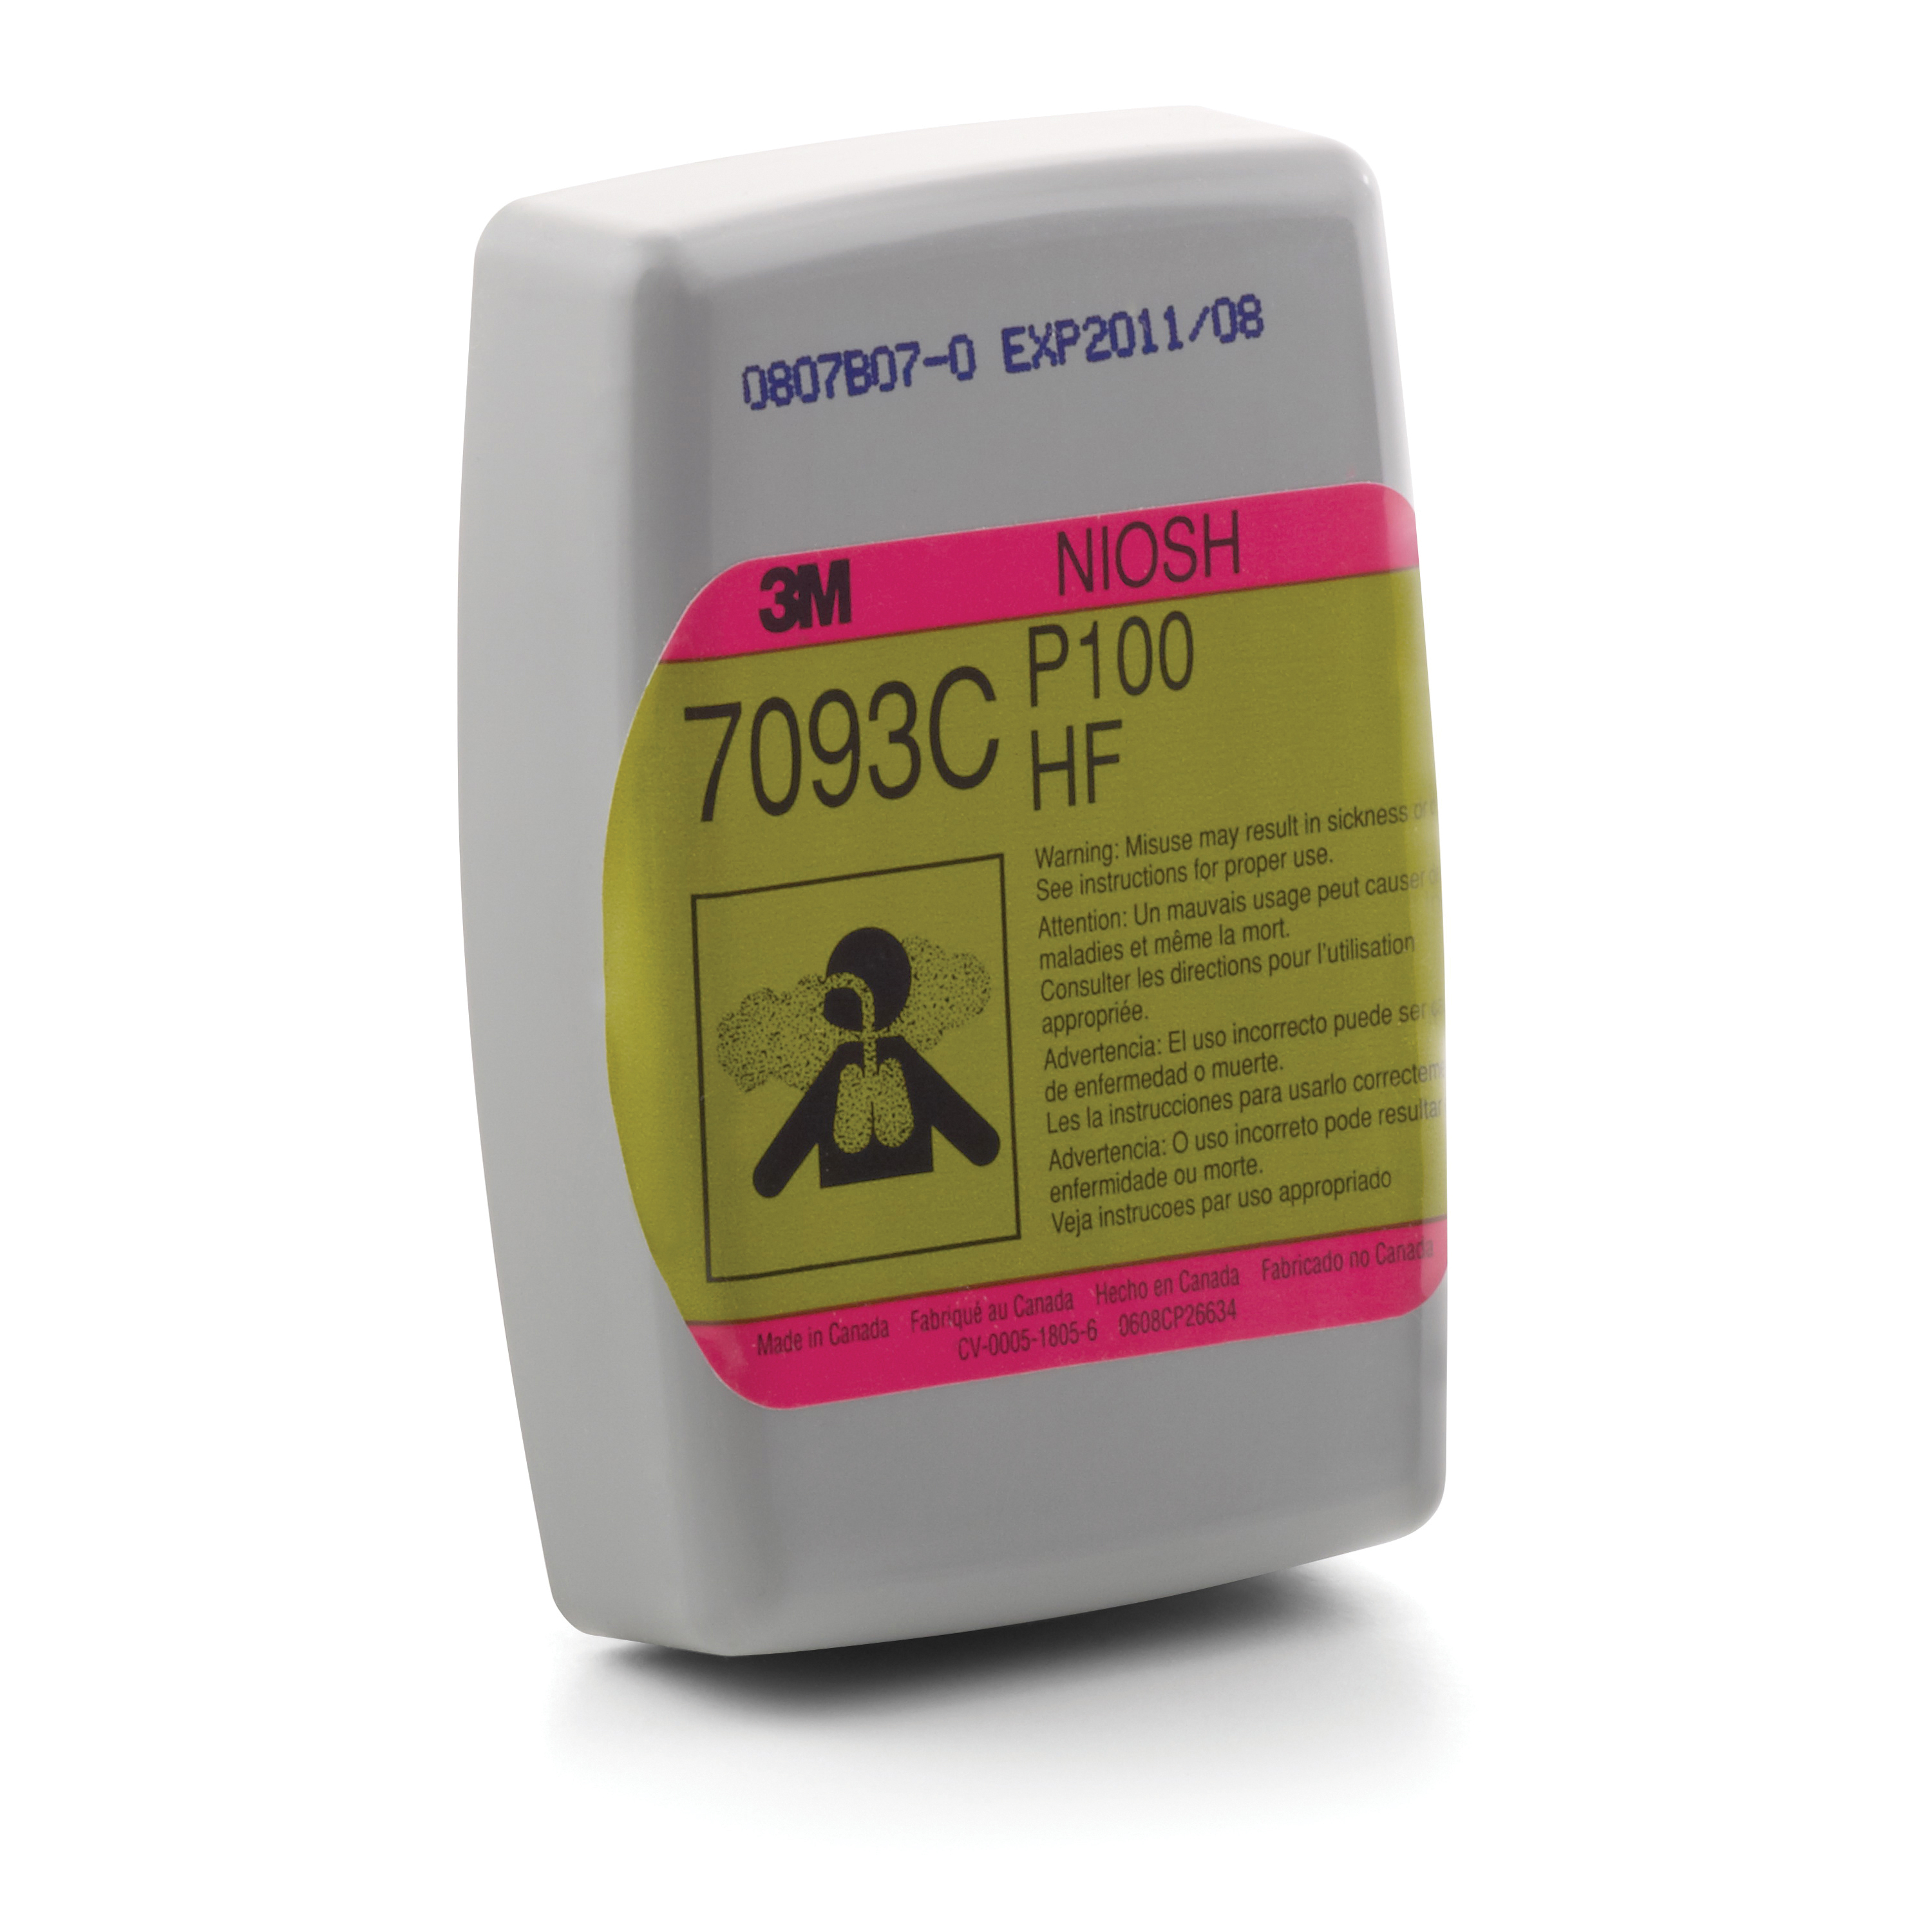 3M™ Advanced Particulate Filter 2297, P100, with Nuisance Level OrganicVapor Relief, 100 EA/Case -- DUE TO HIGH DEMAND, we may be unable to fulfill any orders for this product regardless of stock status indicated.